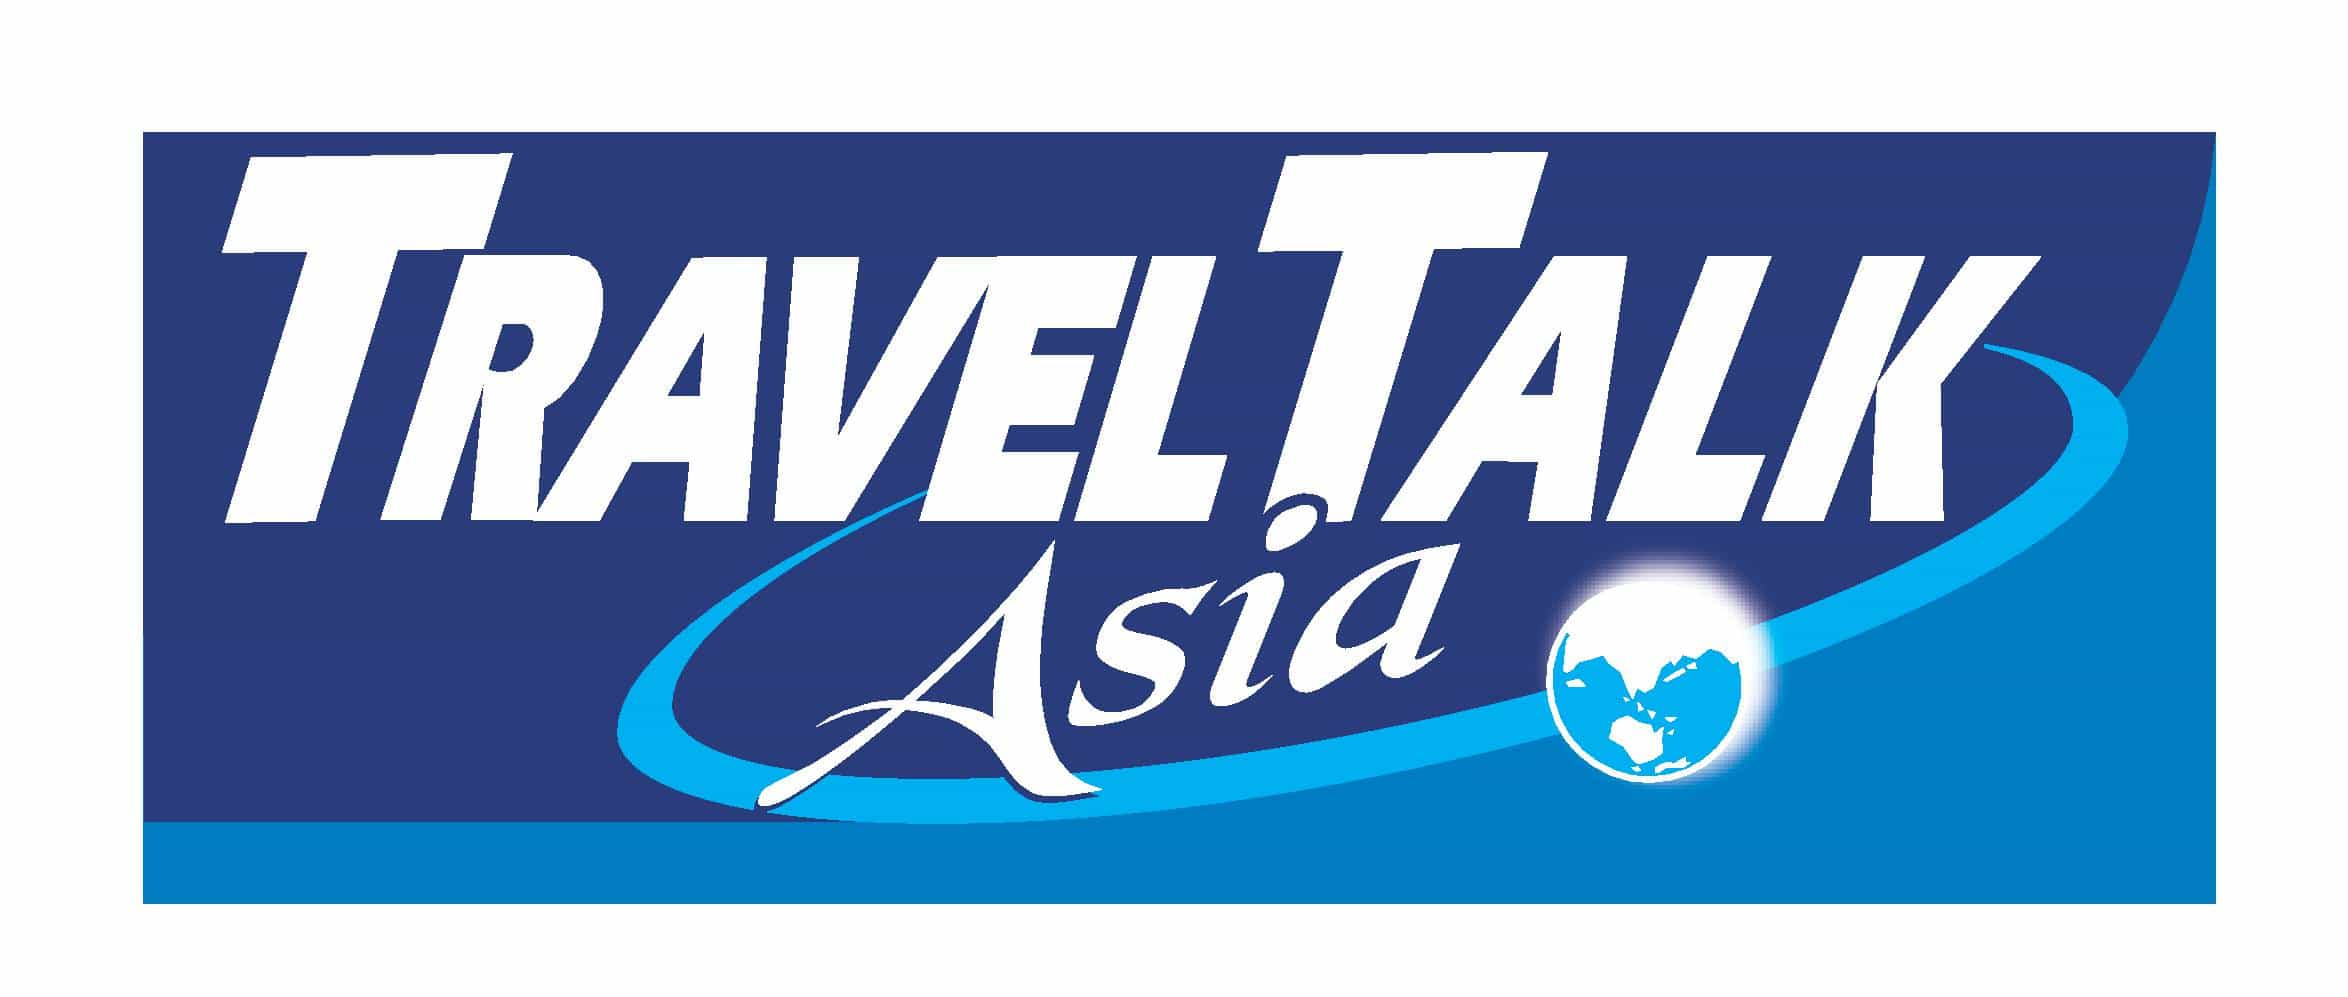 Travel Talk Asia